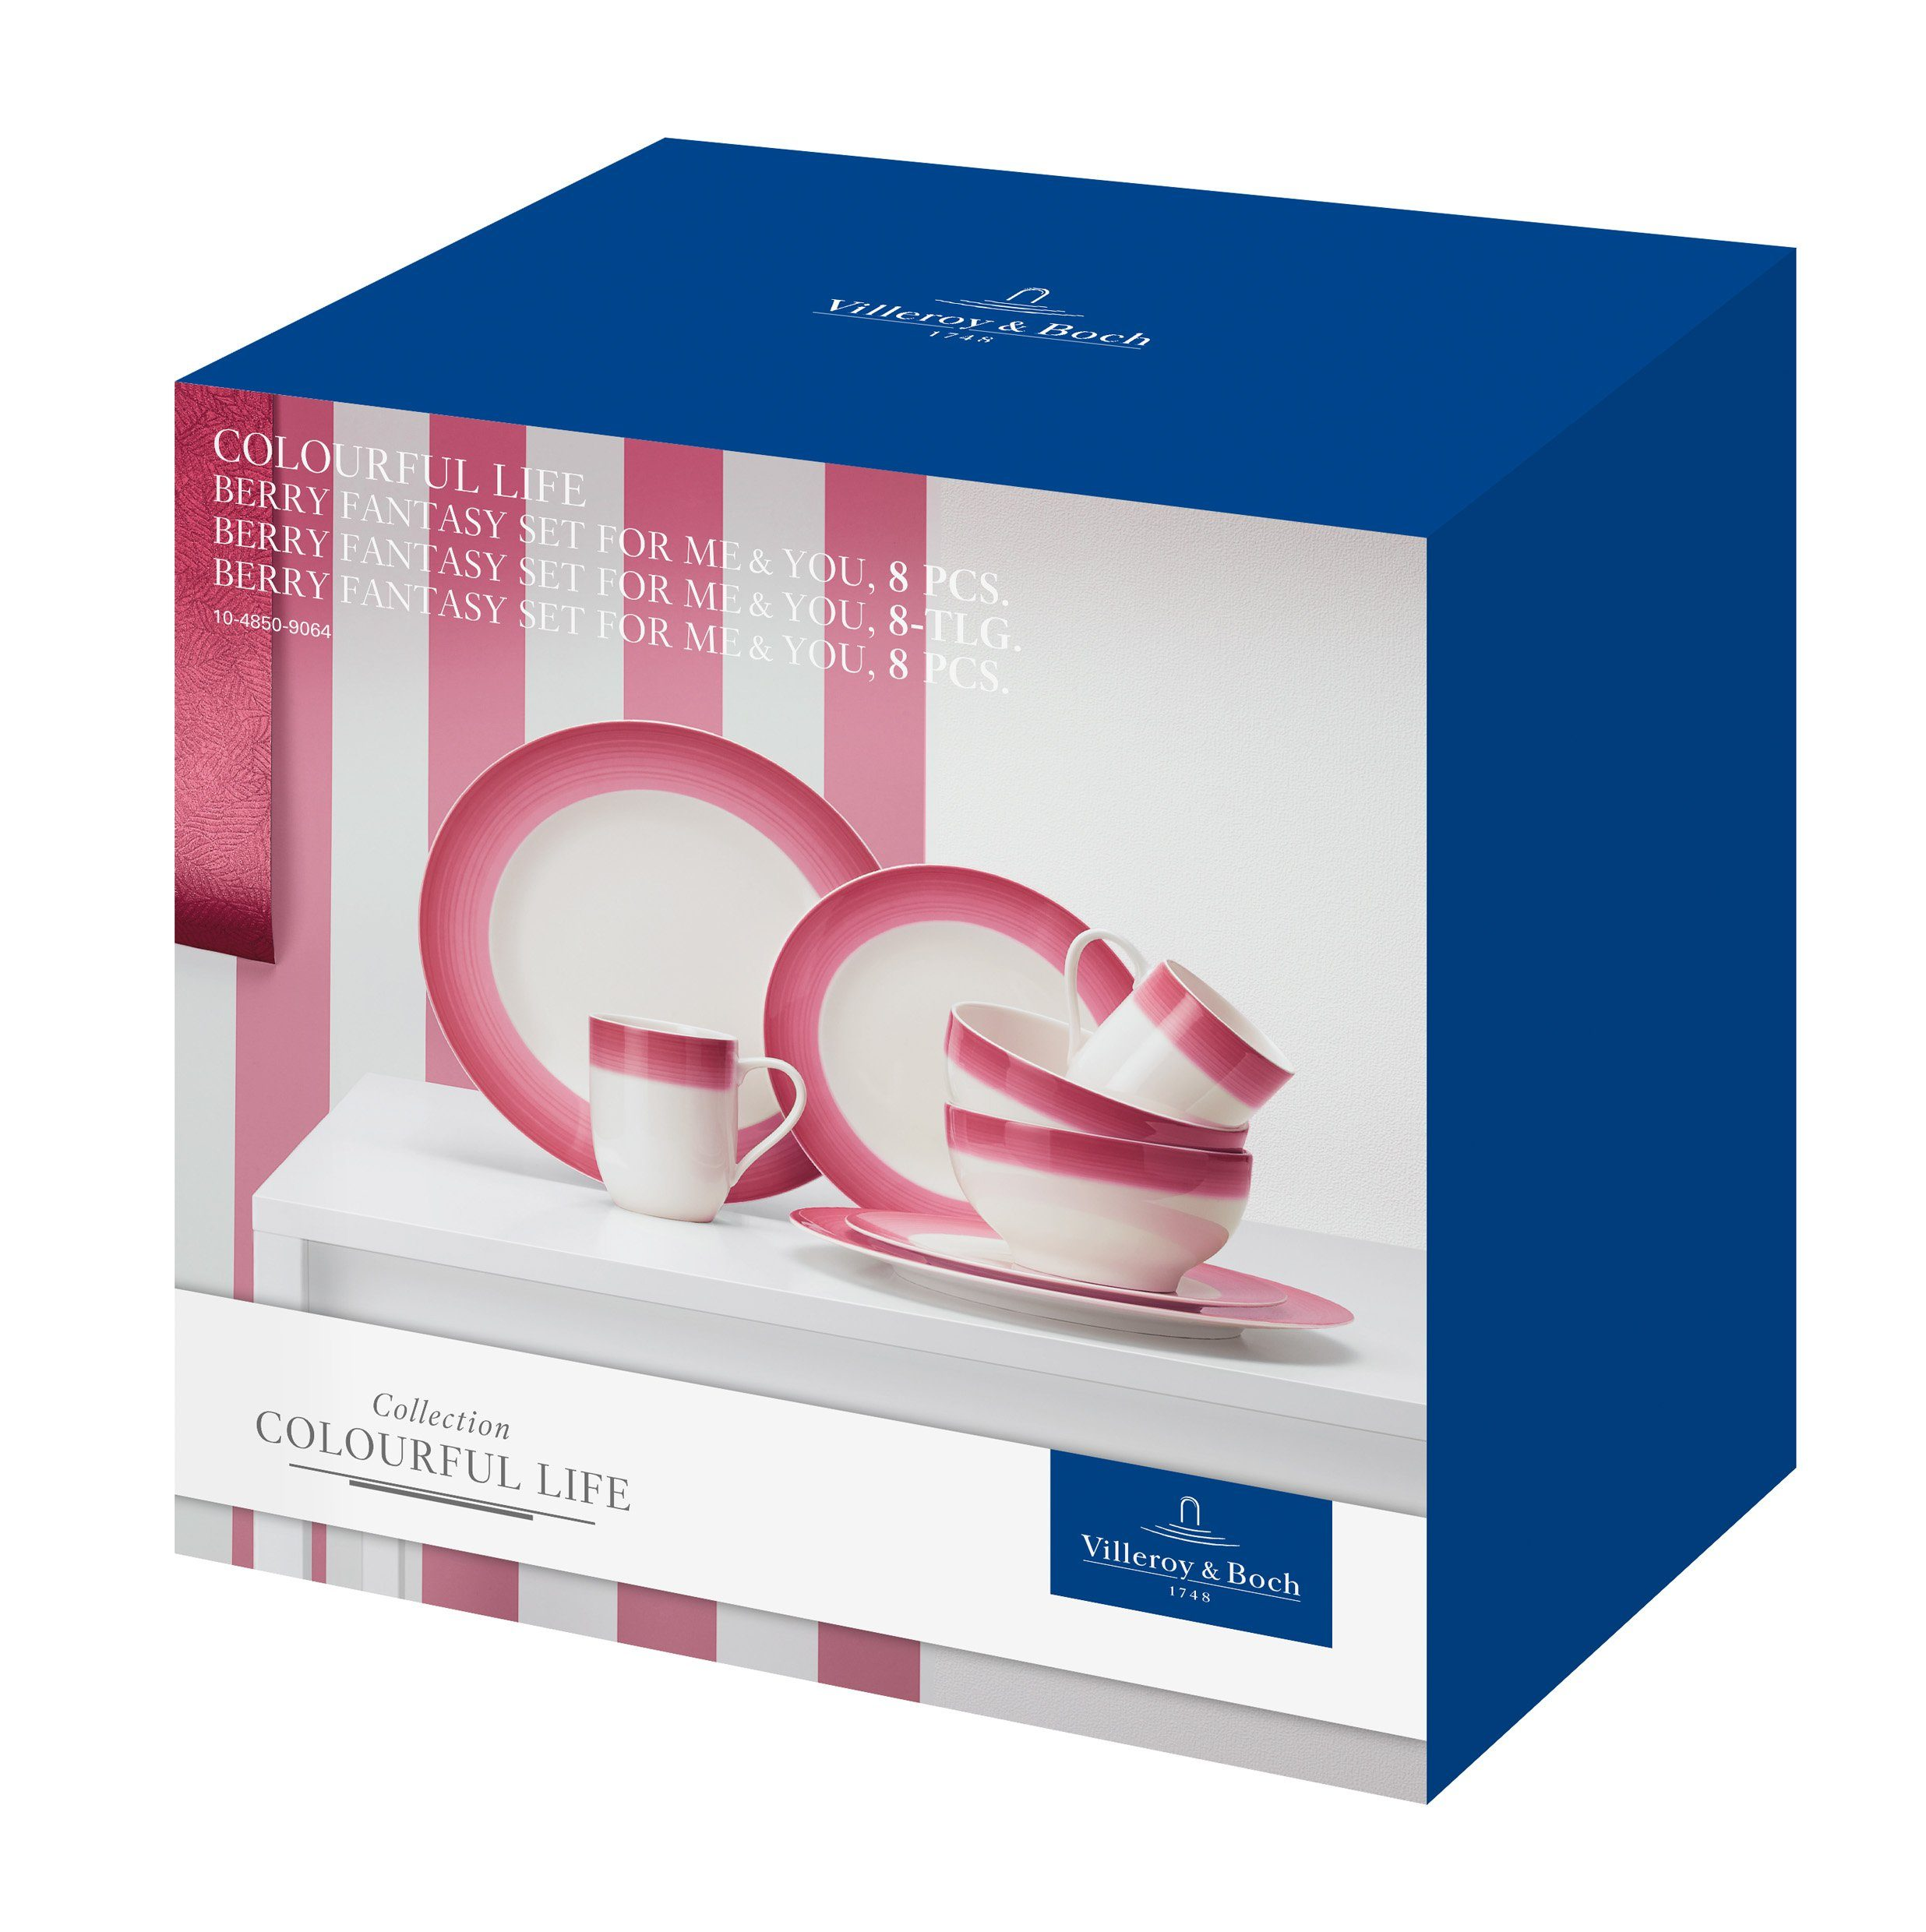 Villeroy & Boch Set For Me & You »Colourful Life Berry Fantasy«